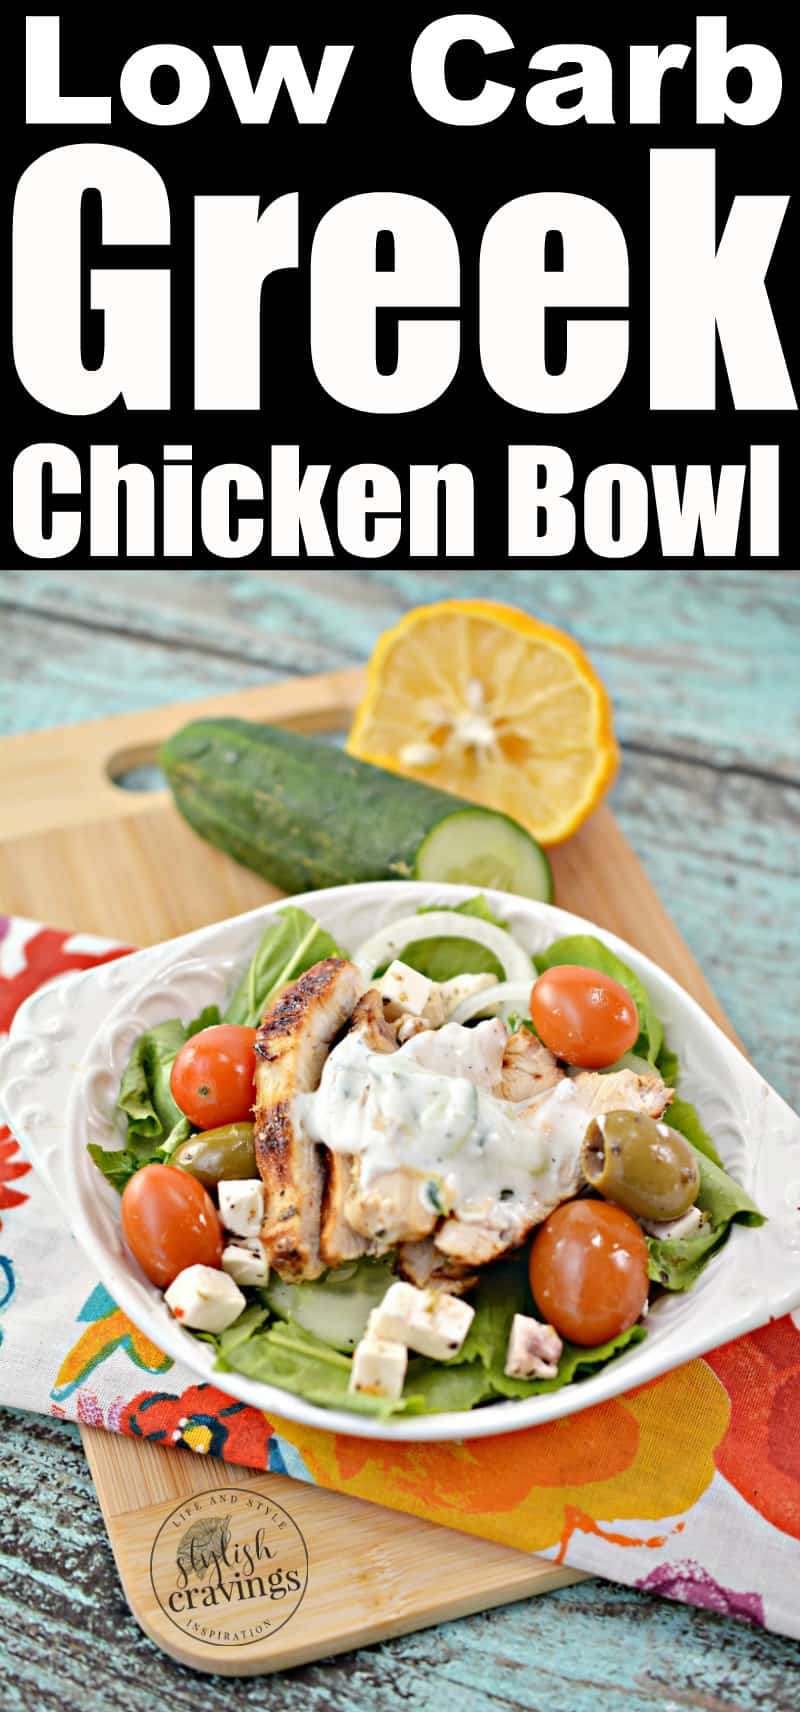 Low Carb Greek Chicken Bowl